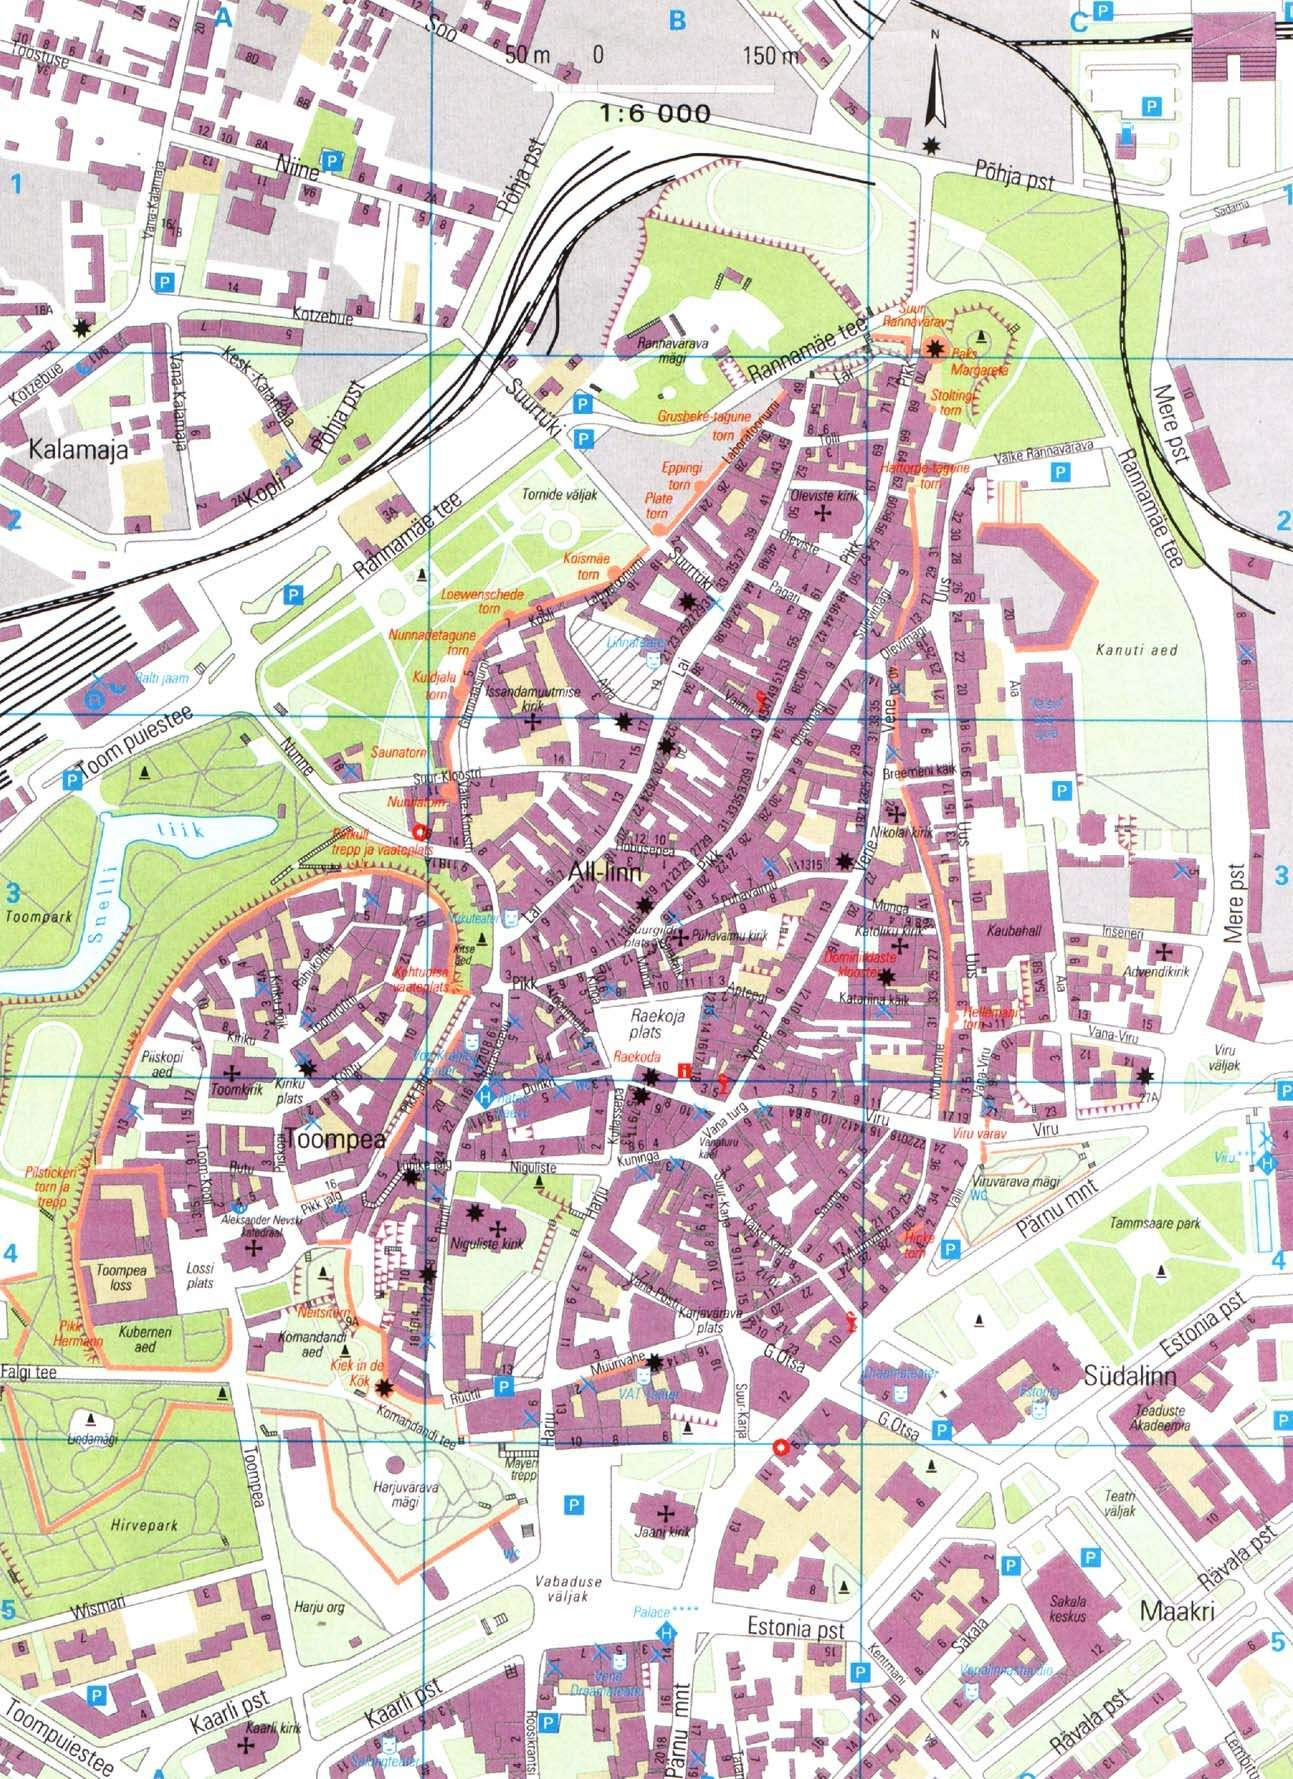 Large Tallinn Maps For Free Download And Print HighResolution - Tallinn map